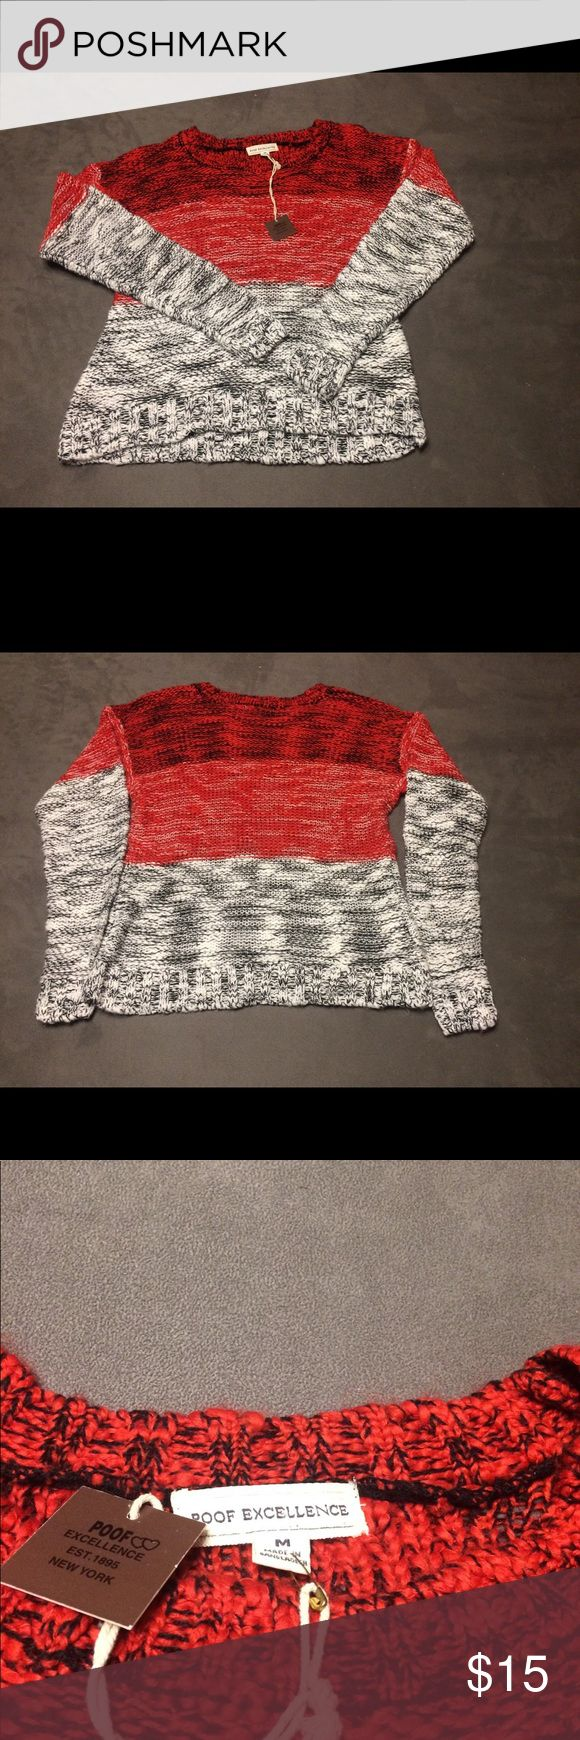 NWT Poof Excellence woven sweater NWT Red, white & black woven sweater. Size Medium. Poof Excellence Sweaters Crew & Scoop Necks